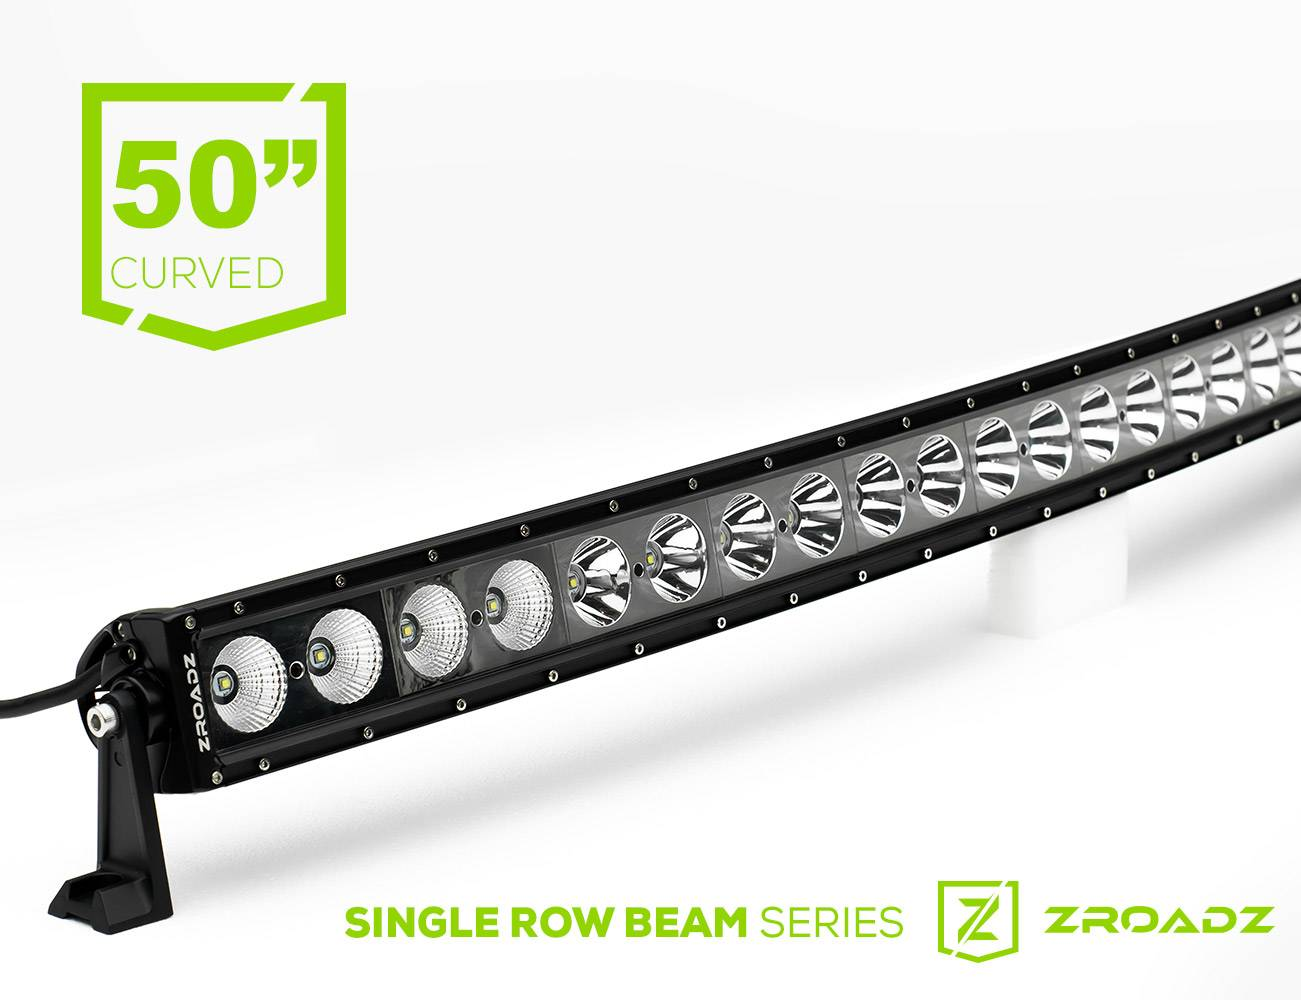 ZROADZ                                             - 50 Inch LED Curved Single Row Light Bar - PN #Z30CBCS12W240